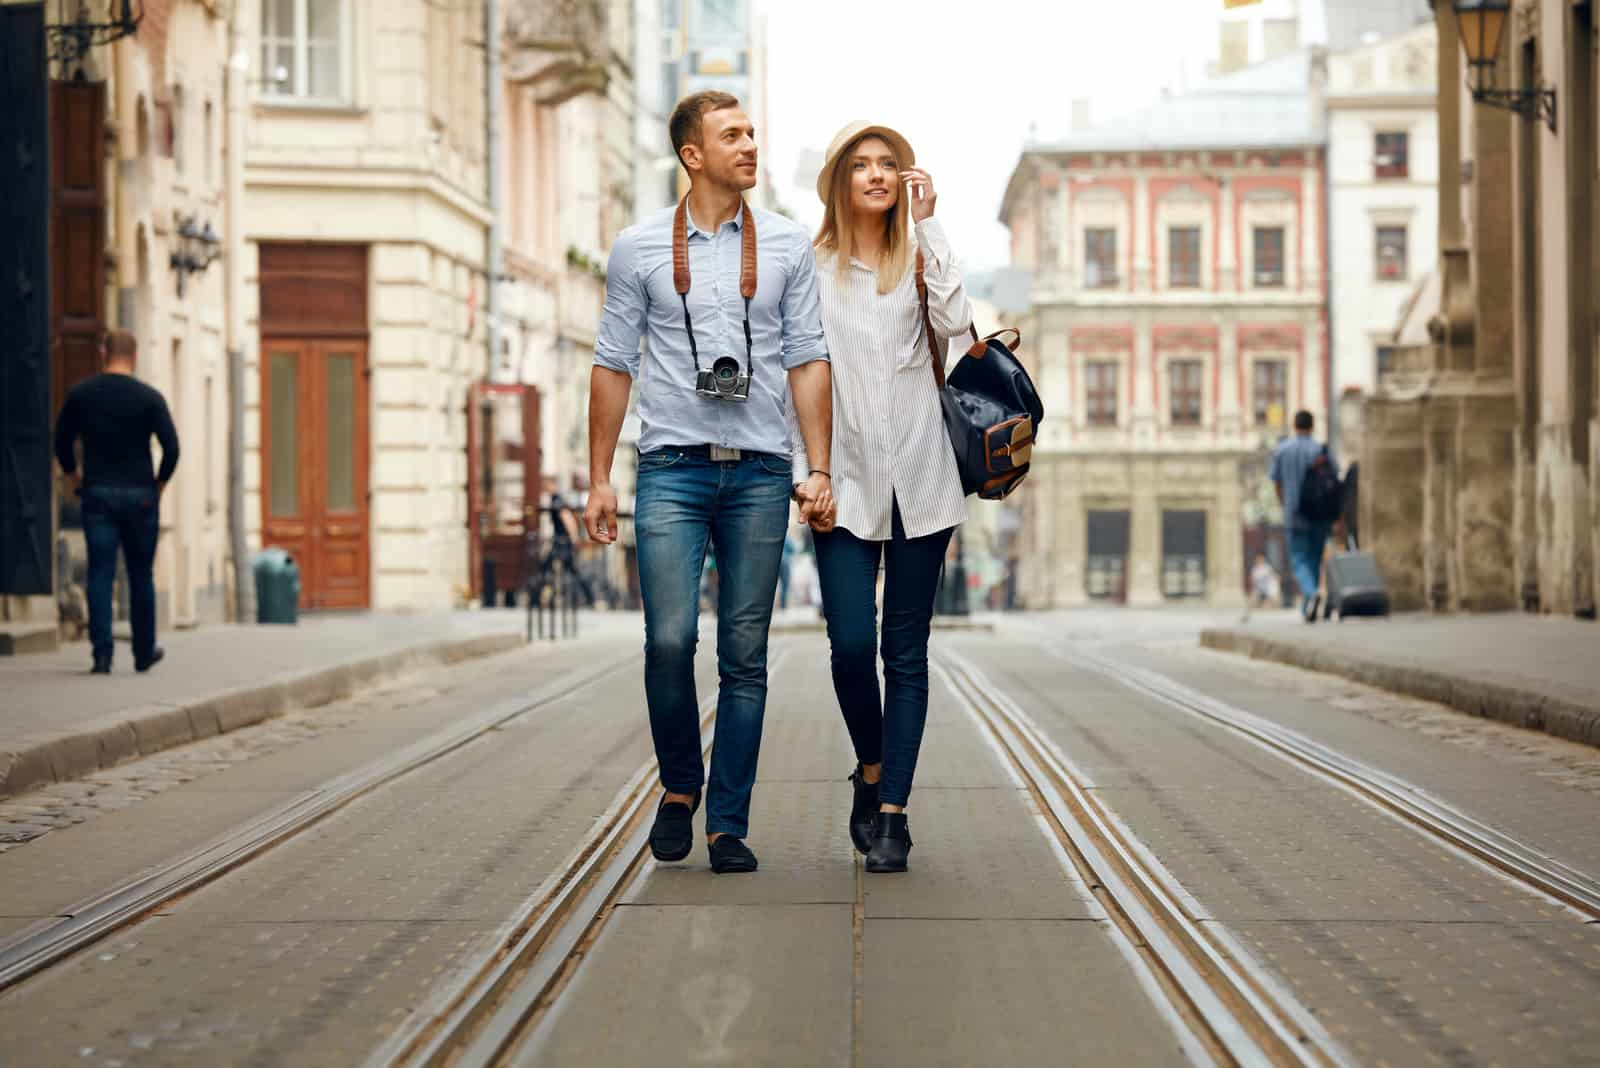 a man and a woman walk down the street holding hands